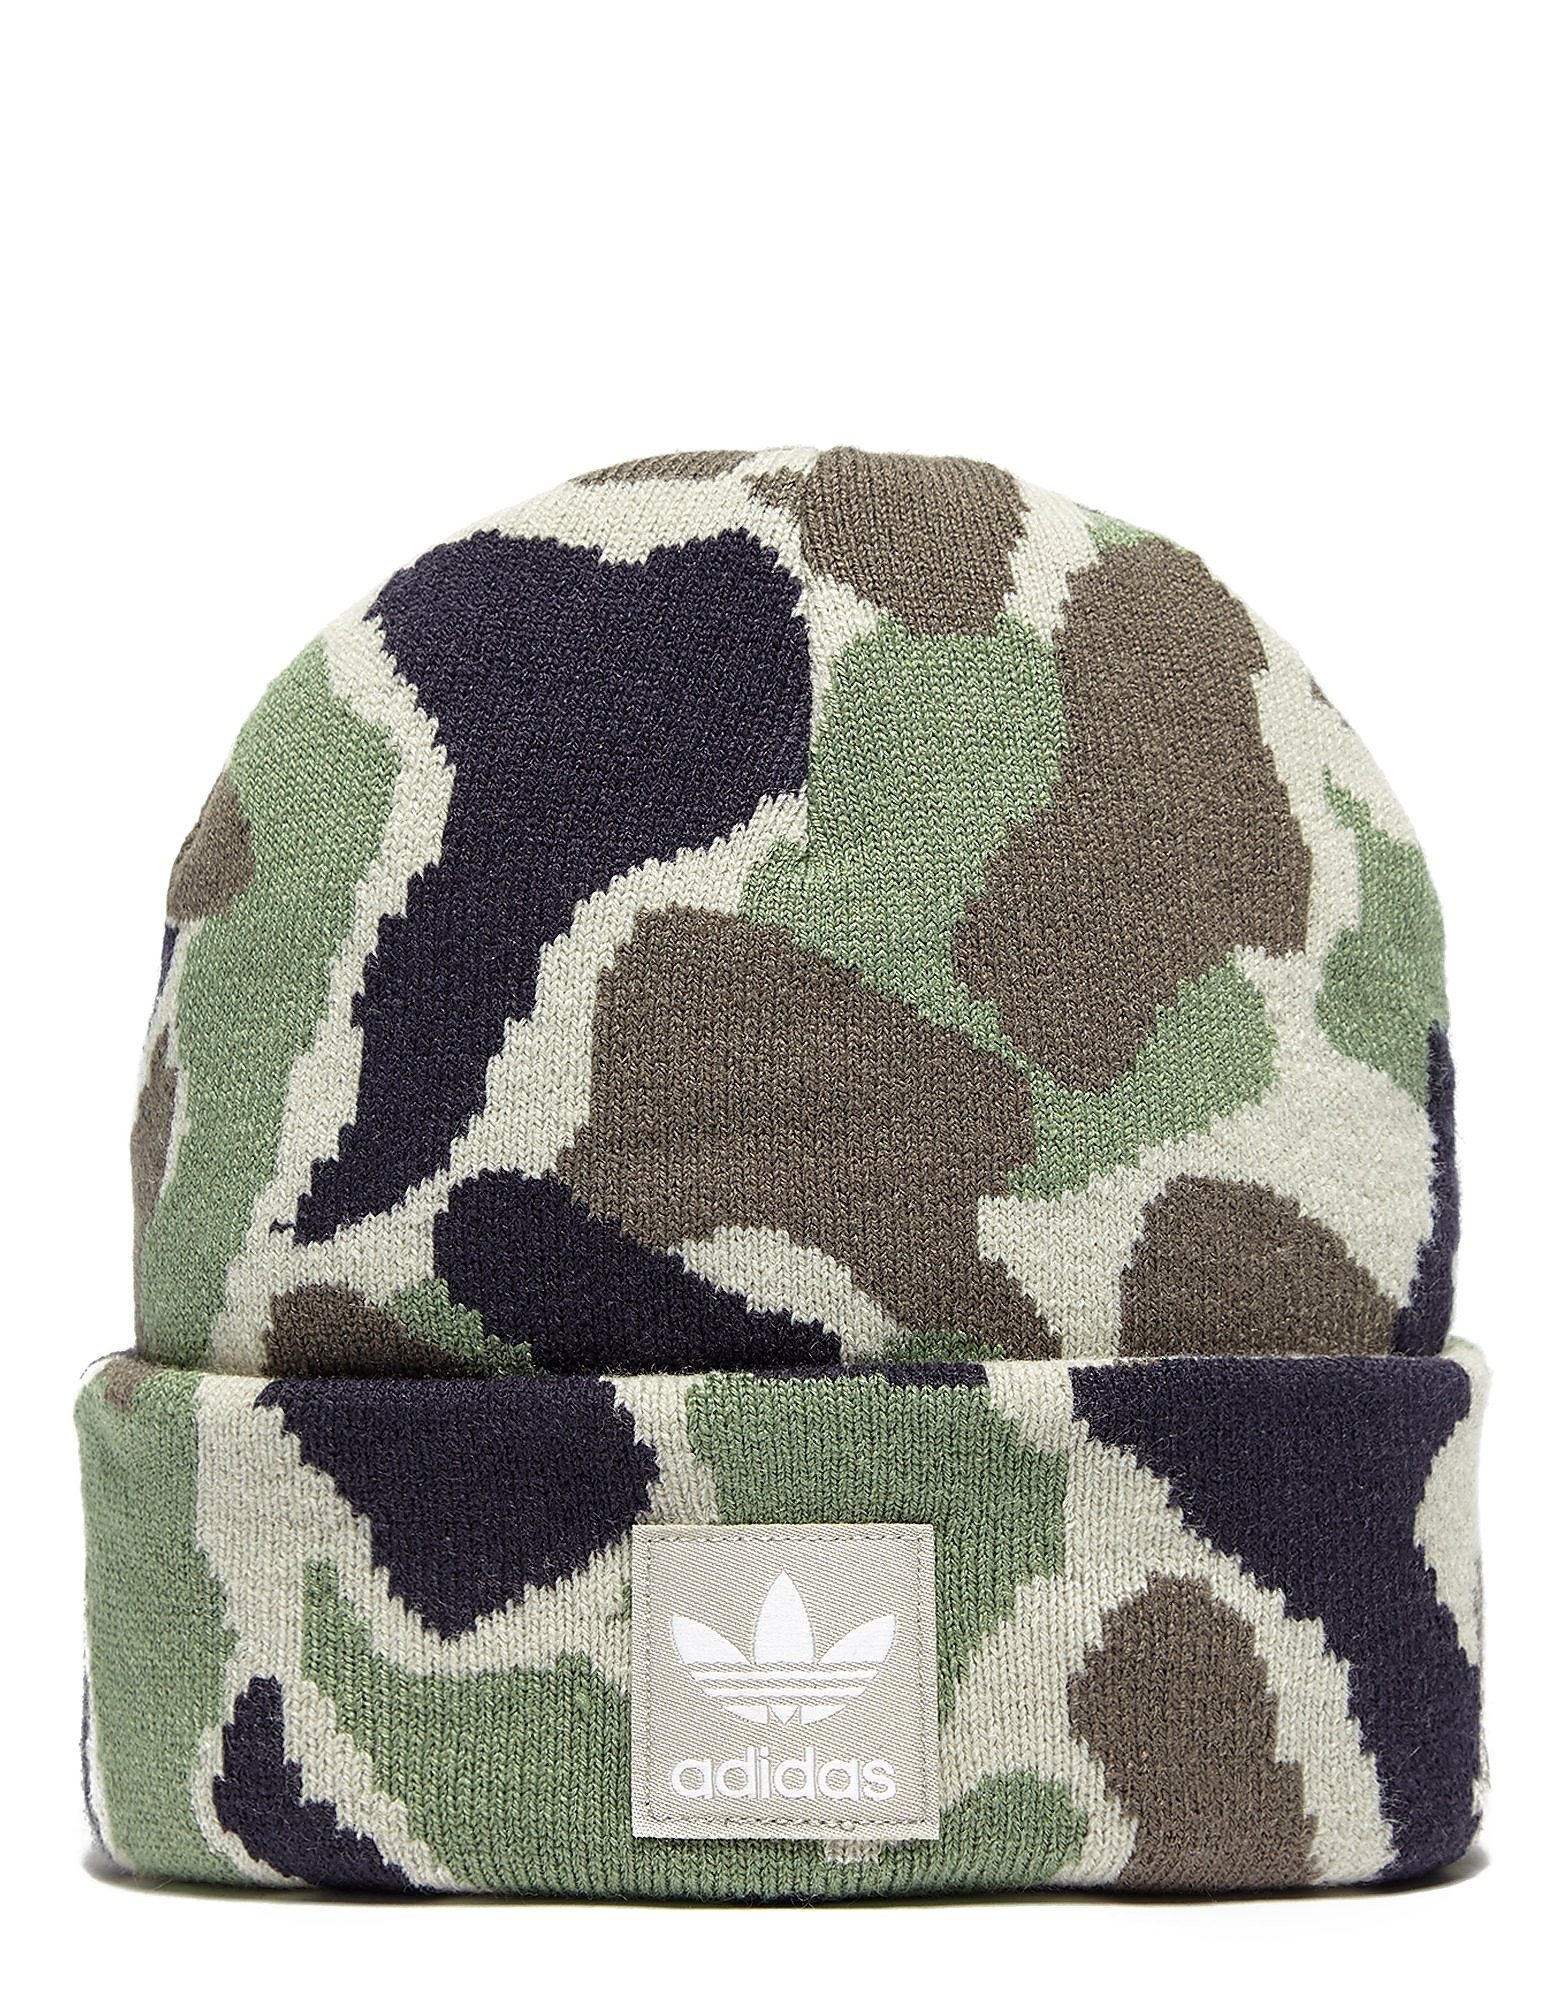 adidas Originals Camo Beanie Hat